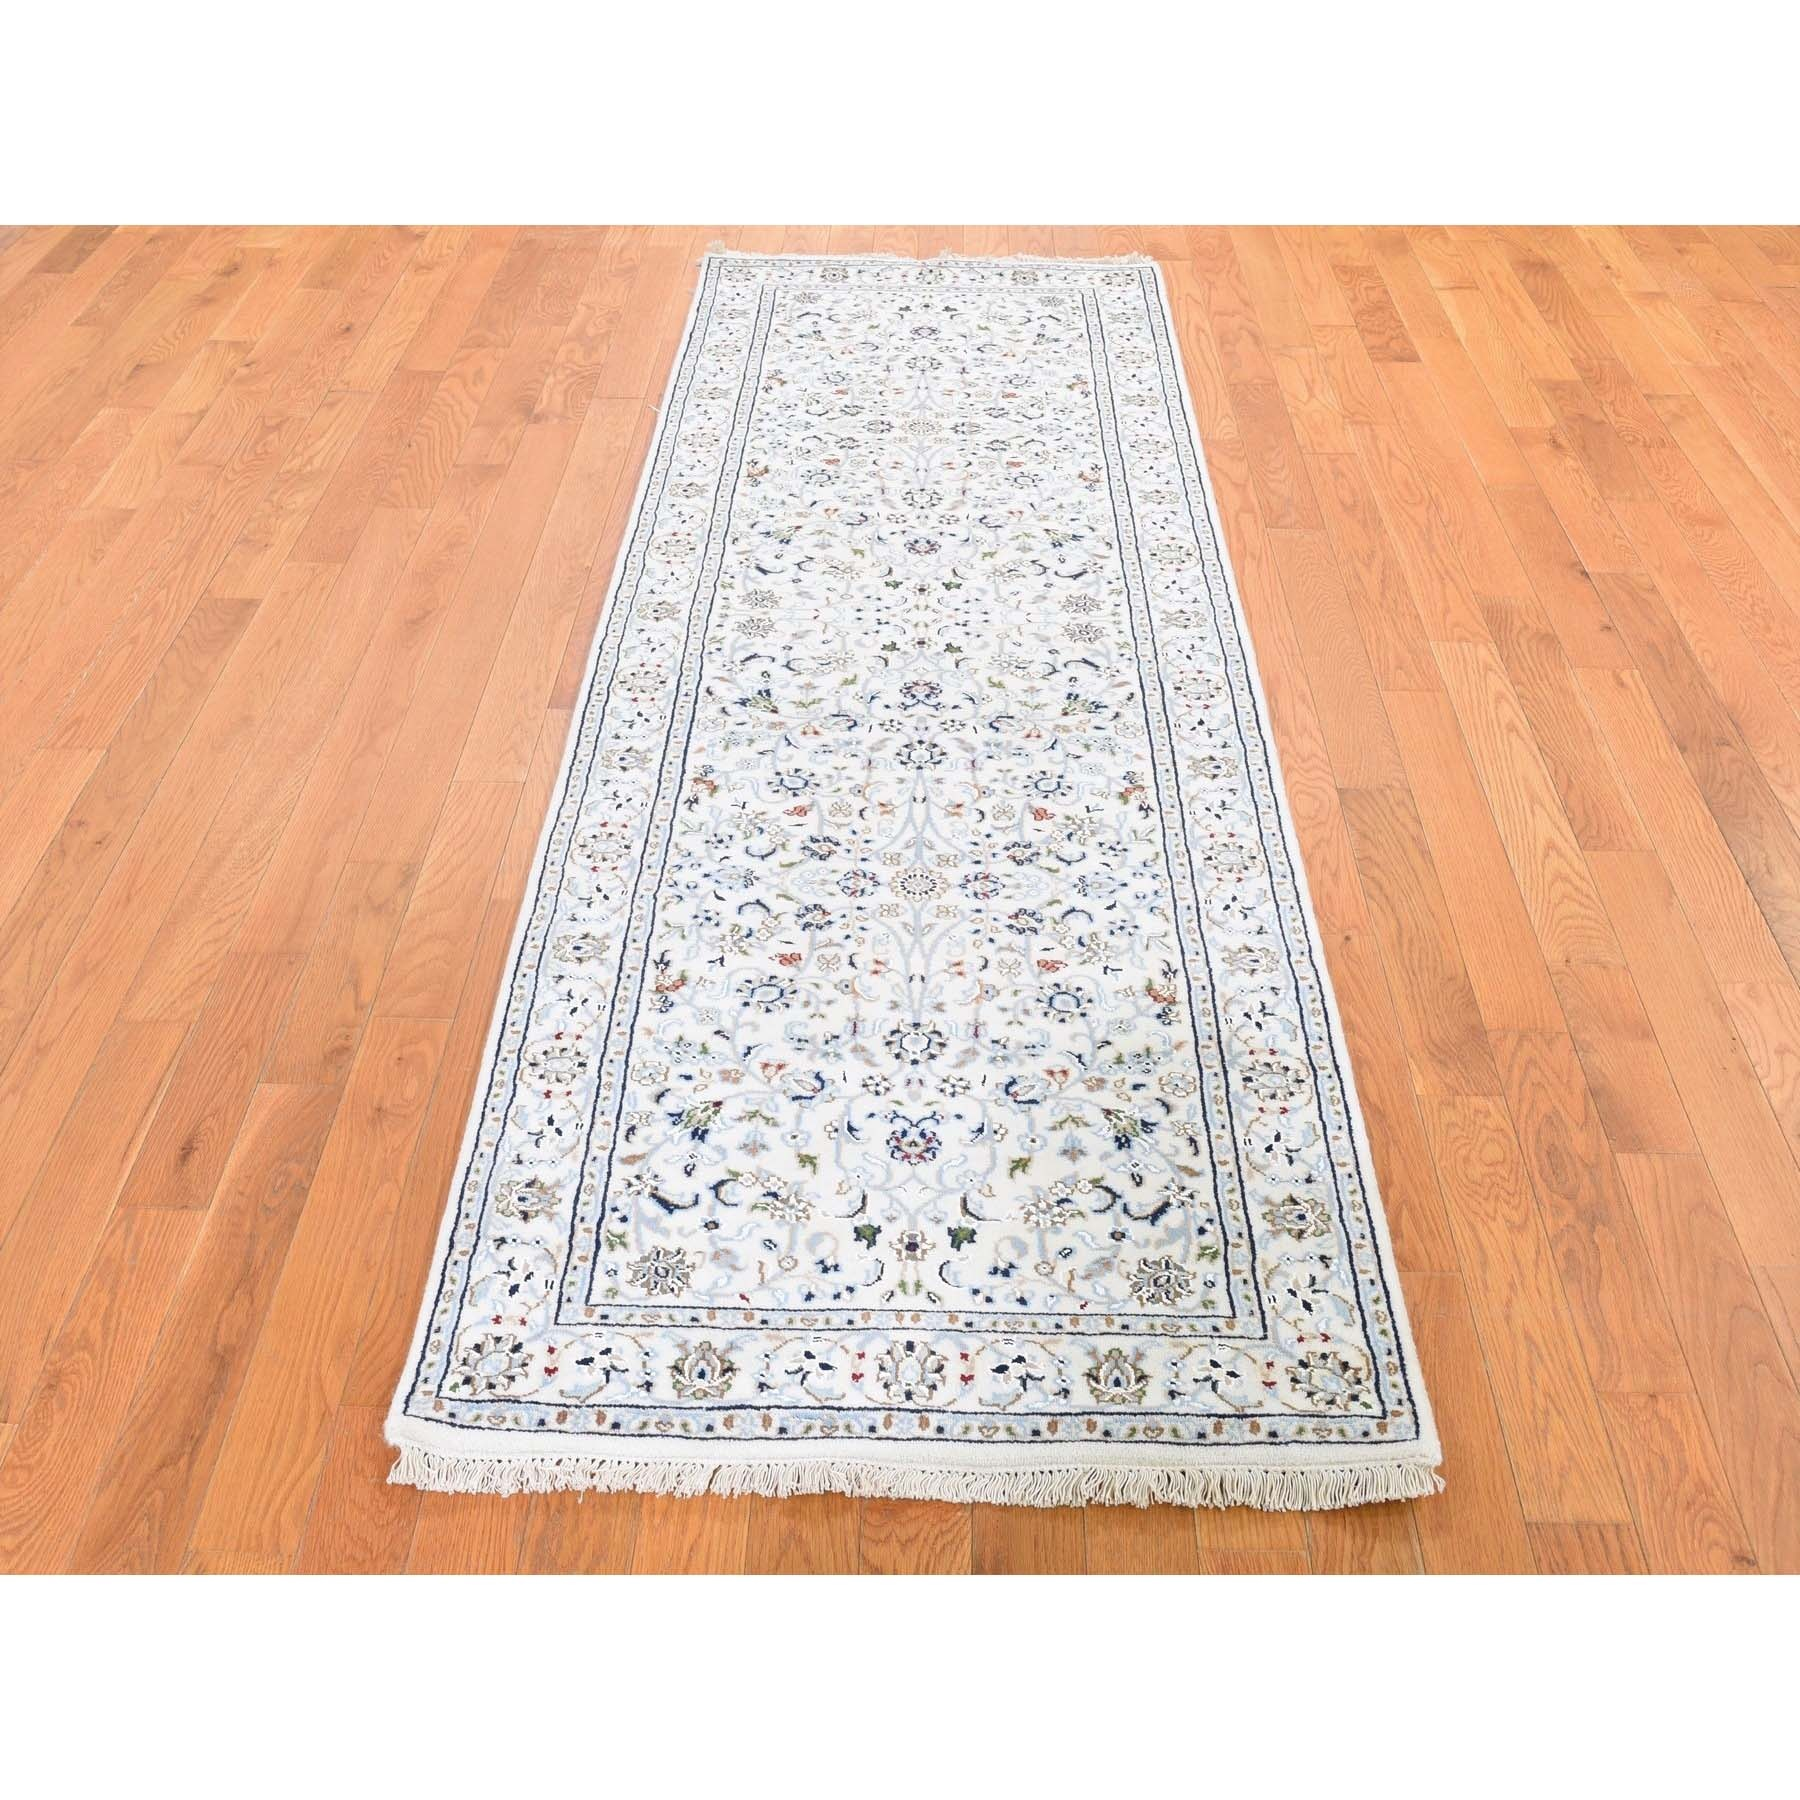 "2'8""x8'3"" Wool And Silk 250 Kpsi Ivory All Over Design Nain Runner Hand-Knotted Oriental Rug"